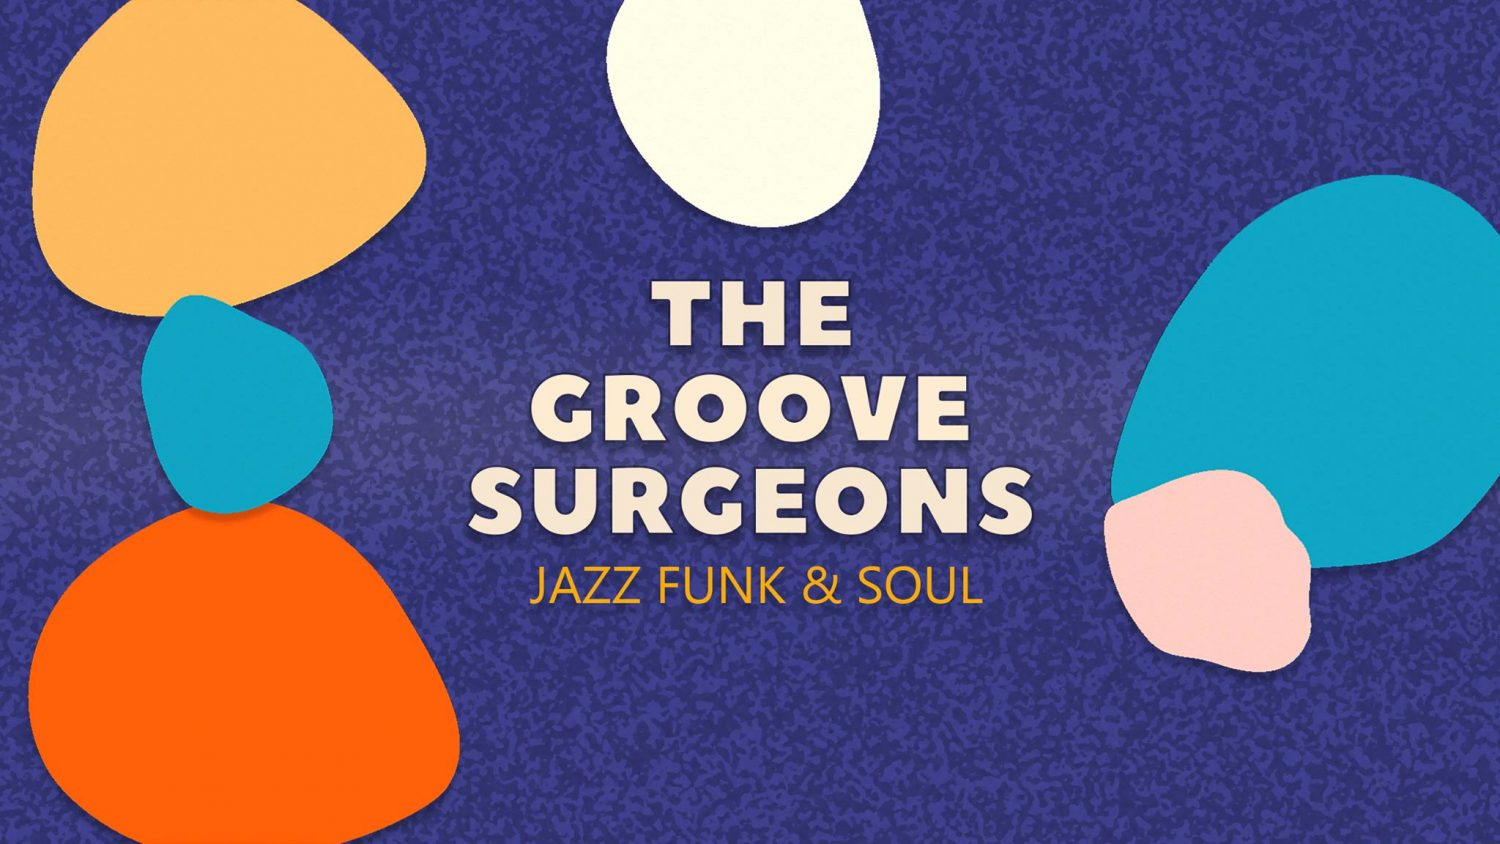 The Groove Surgeons